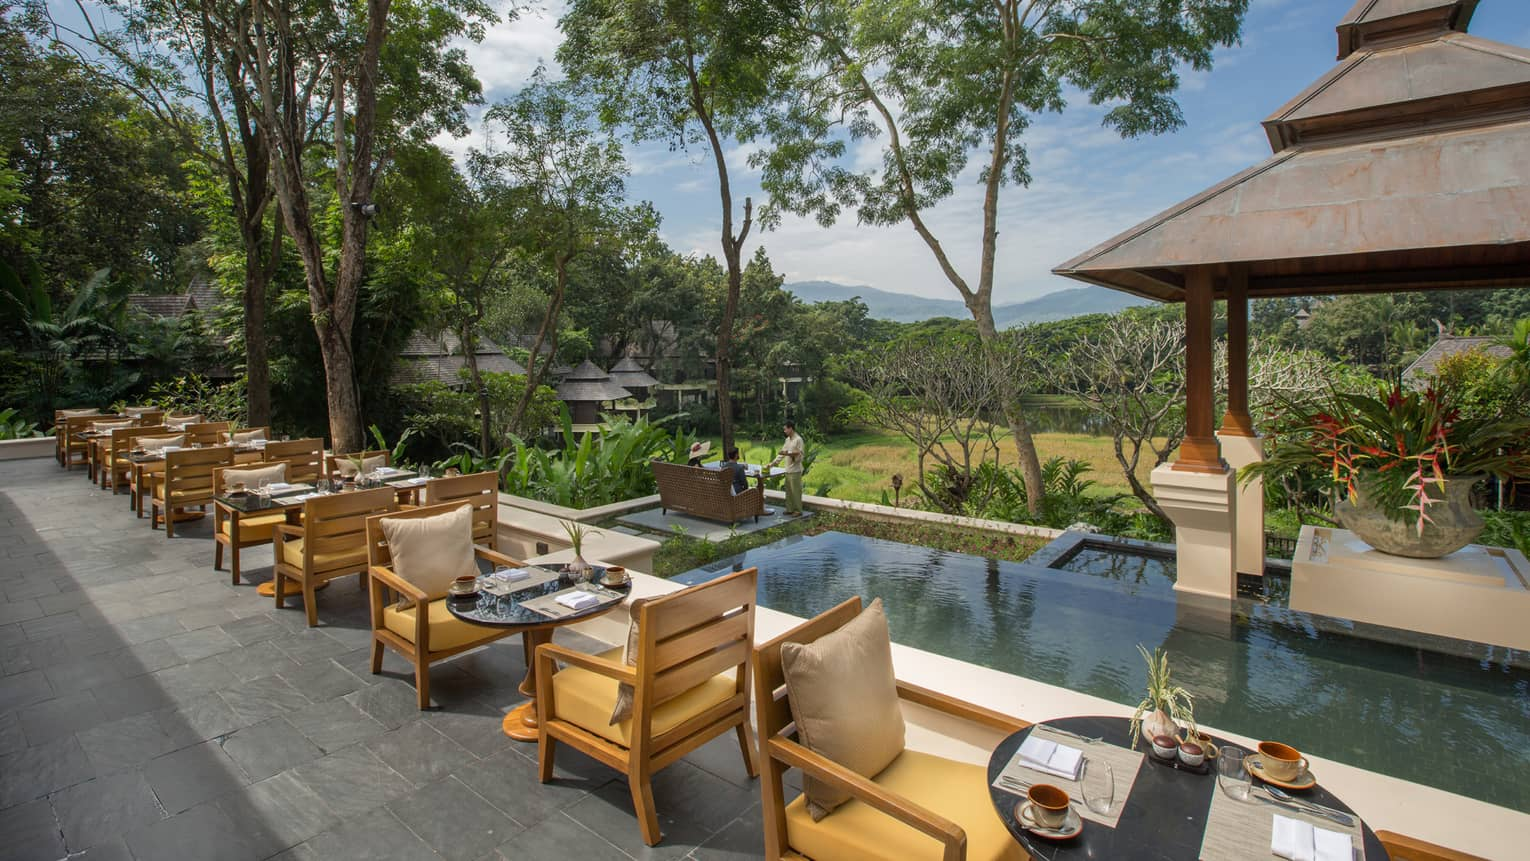 Outdoor terrace with dining tables, each with two wooden arm chairs, overlooking pool